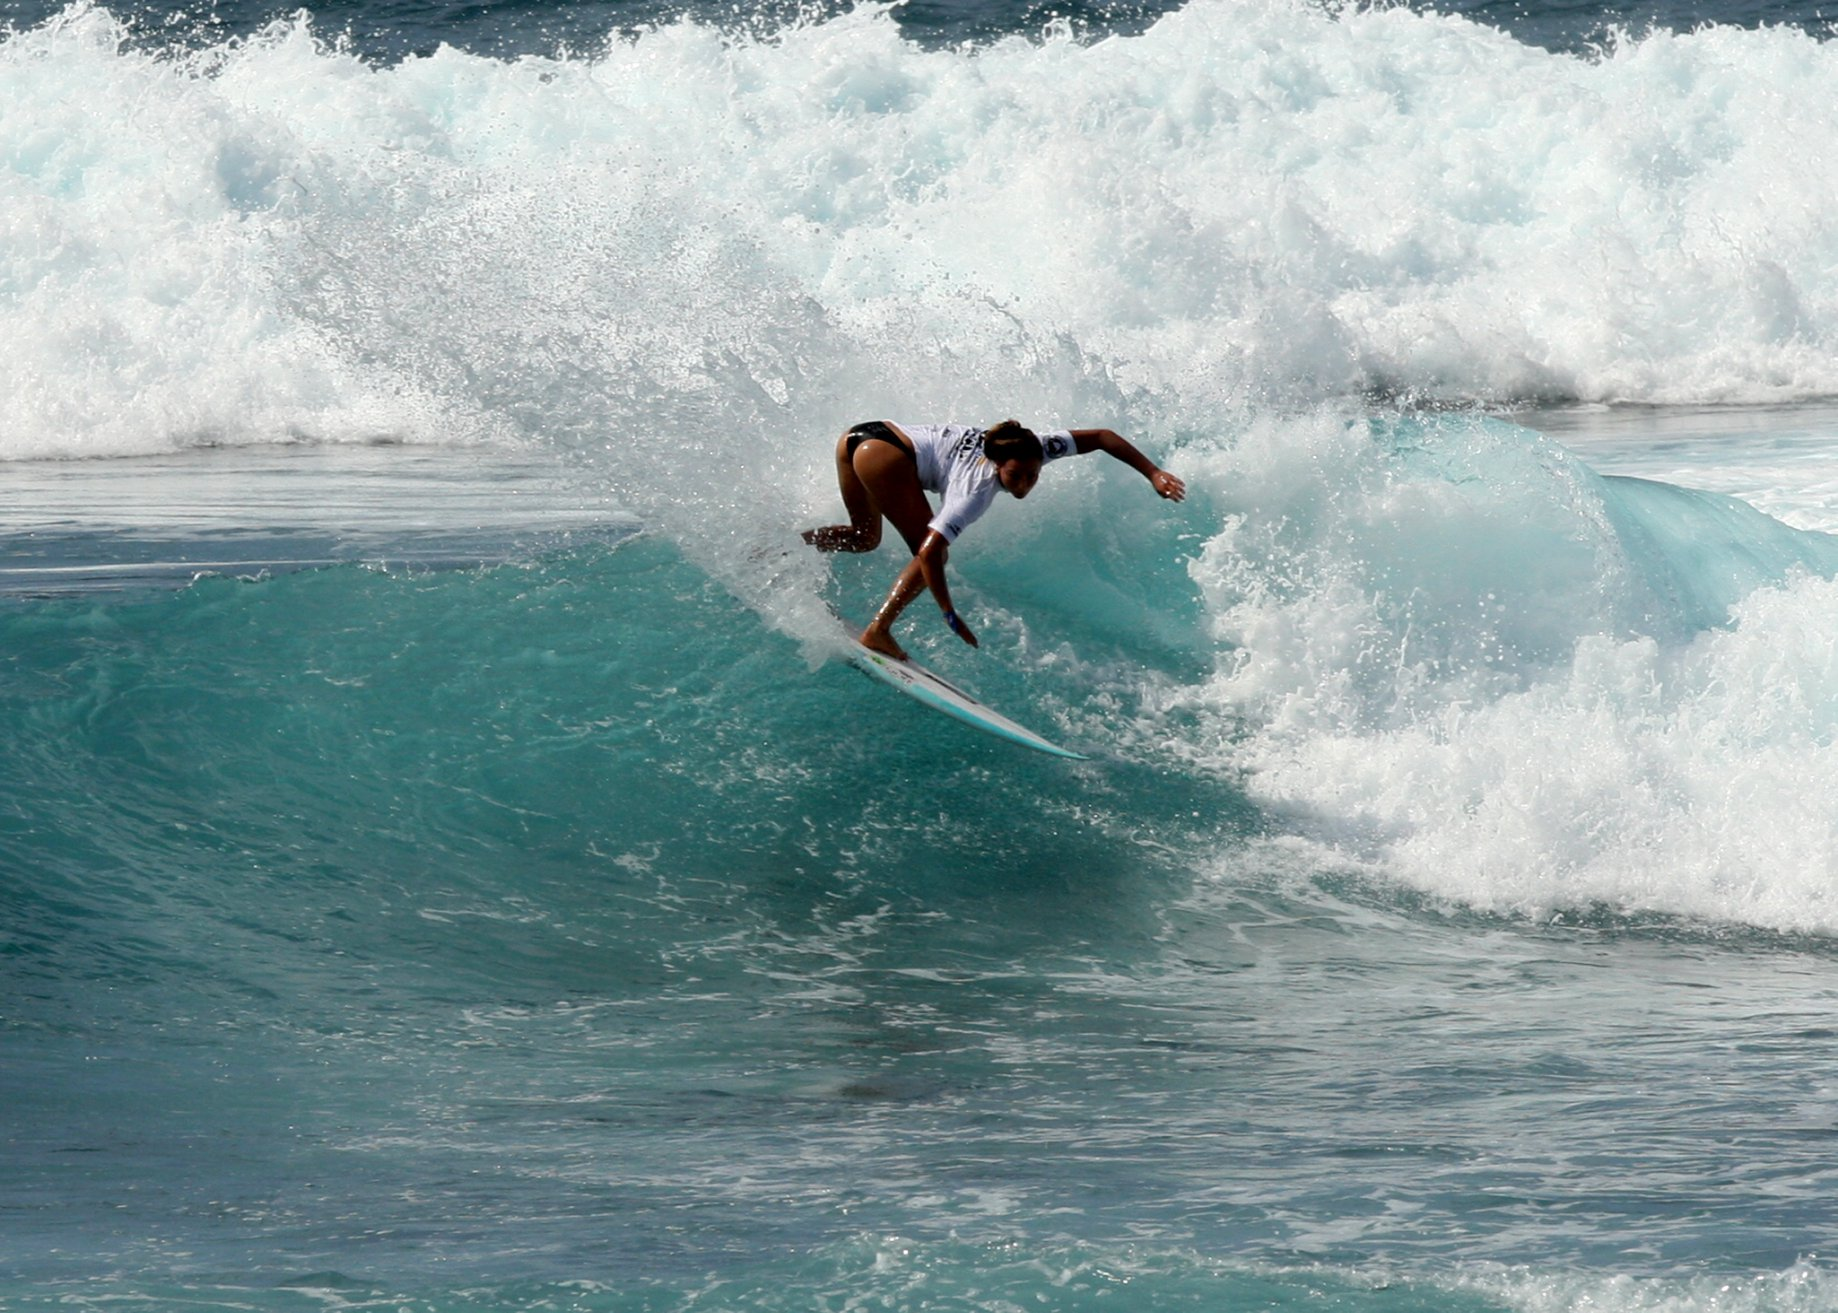 32nd Edition of Corona Extra Pro - Tia Blanco - Photo: Osiris Torres, APSPR©